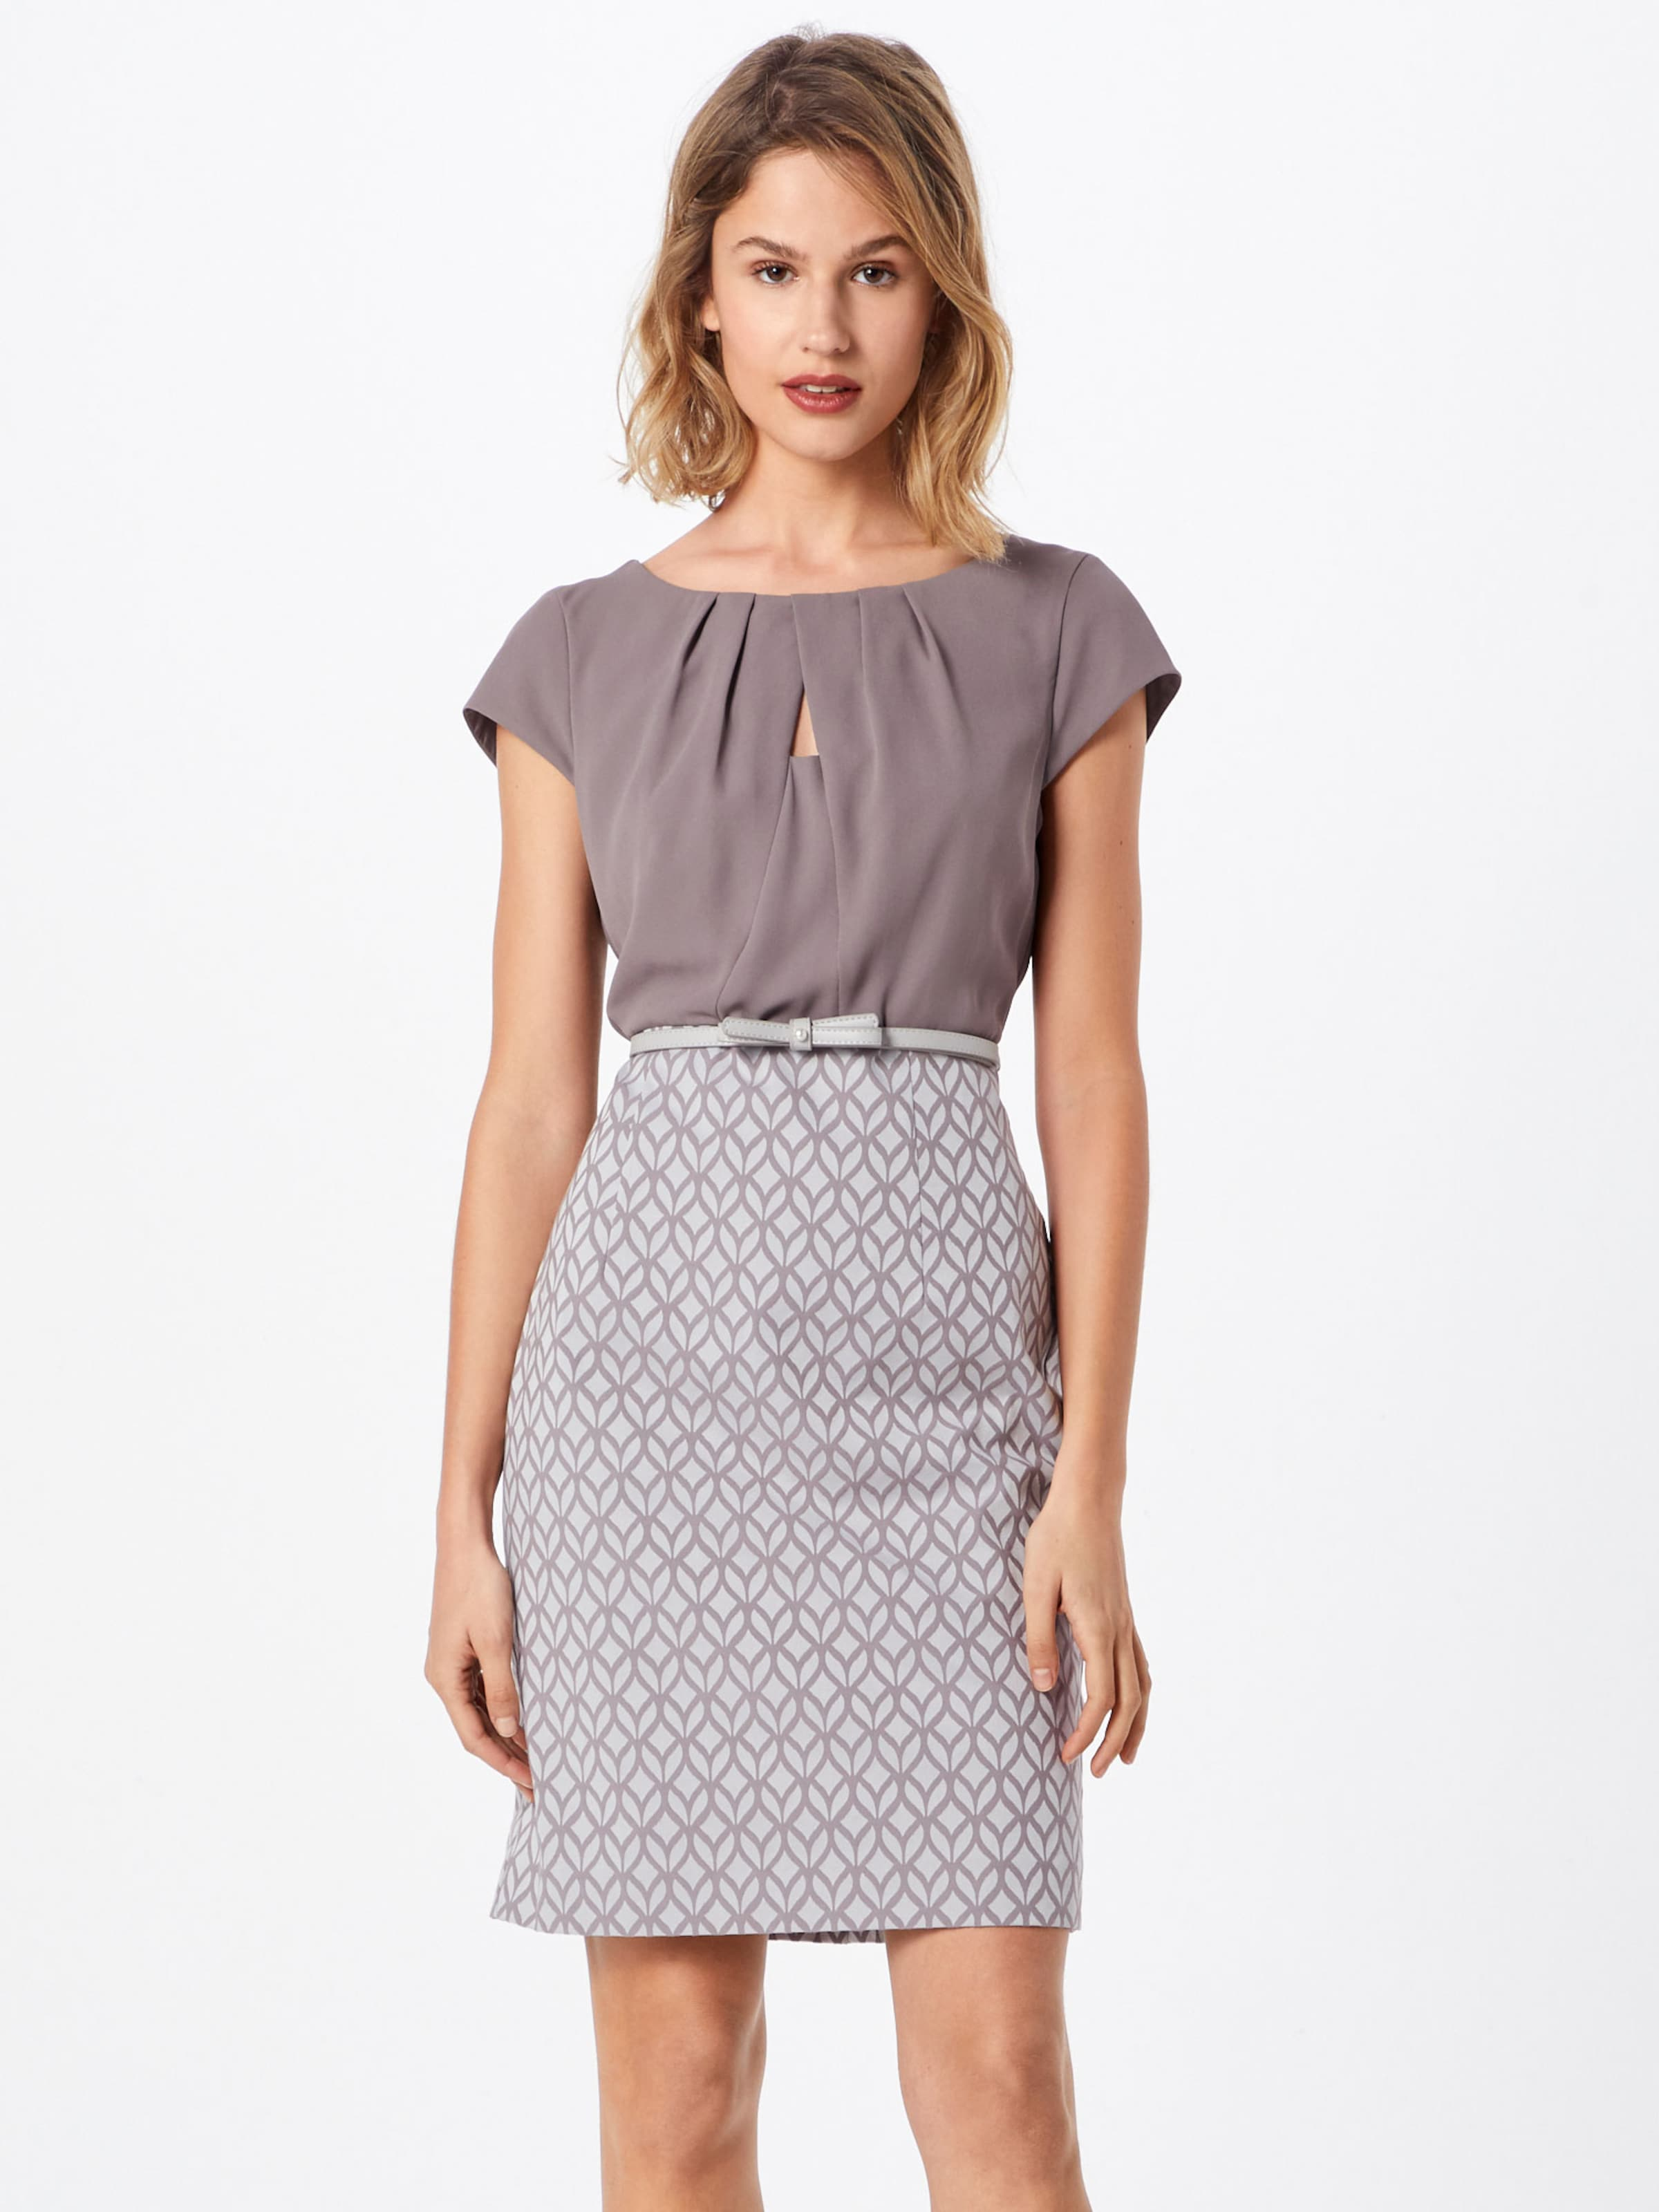 Taupe In Kleid Kleid Comma Comma D9IYbWEHe2